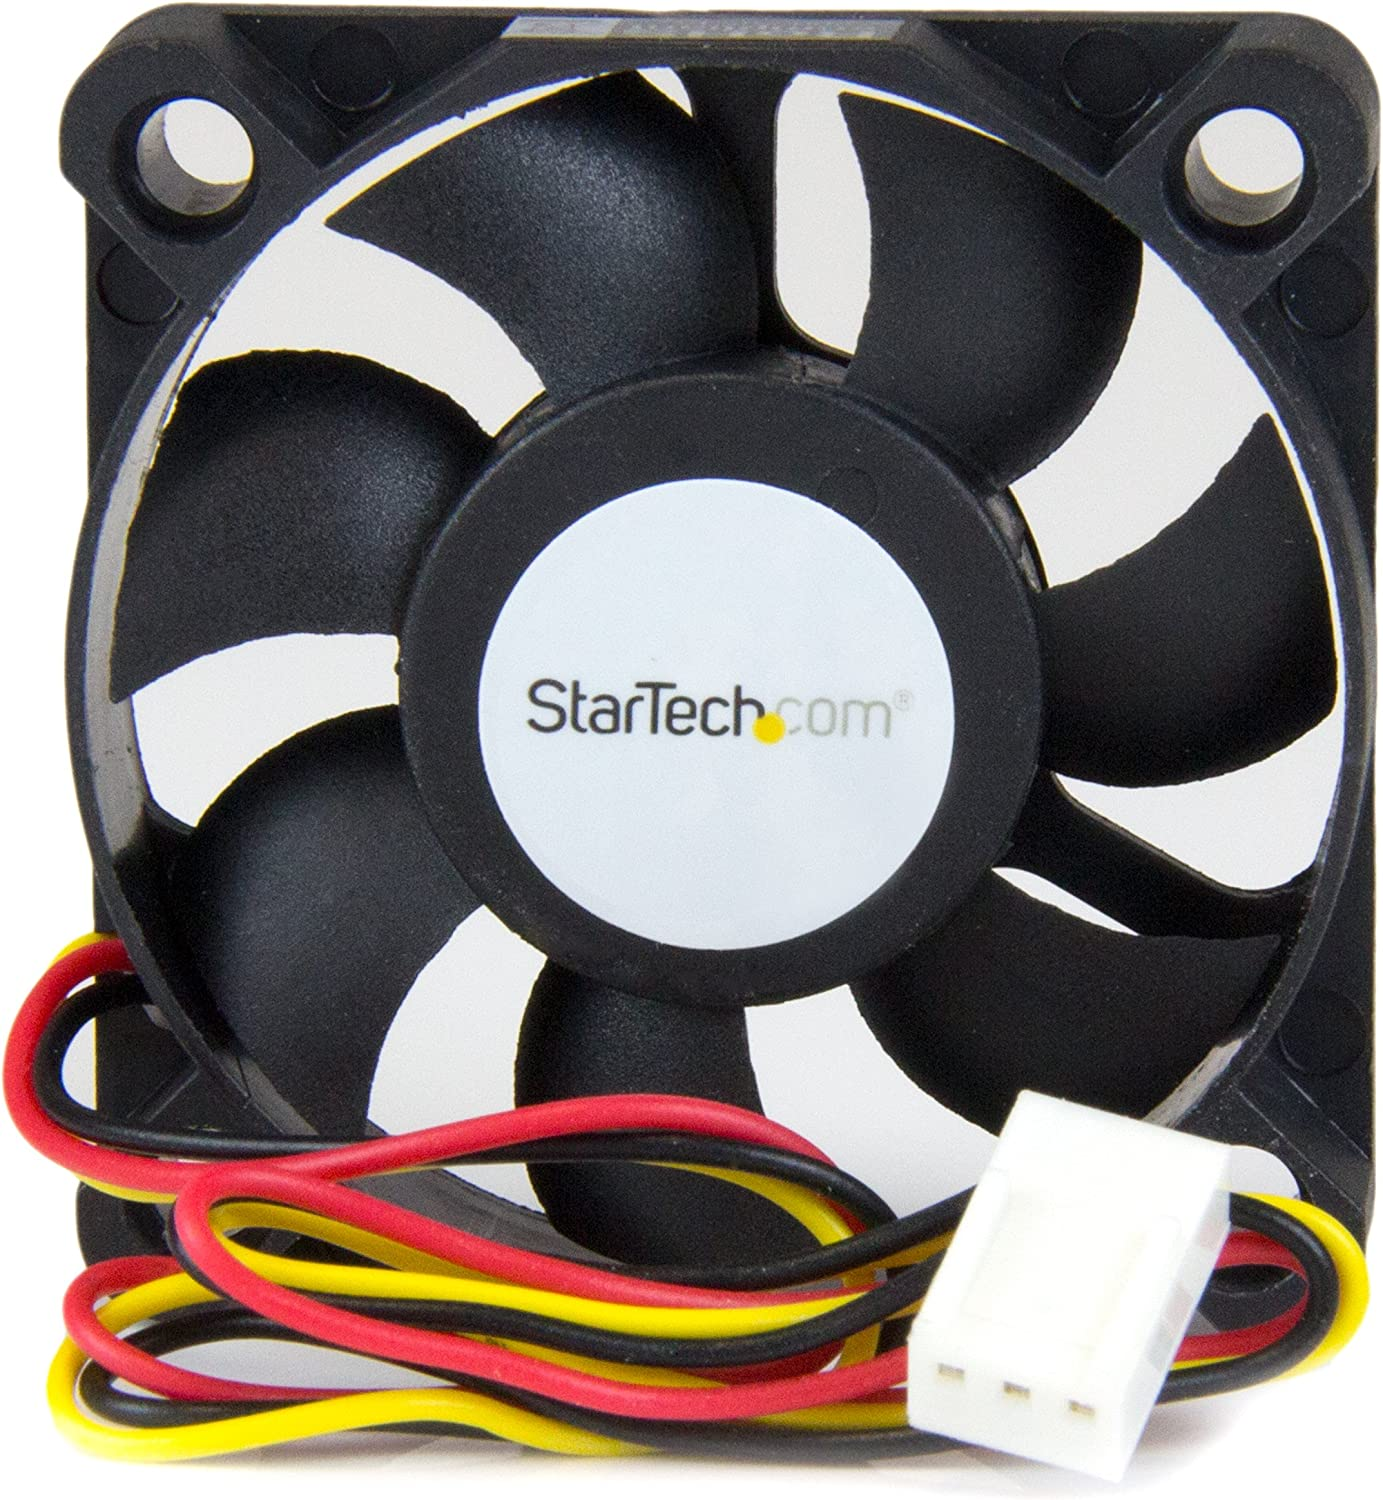 StarTech.com 50x10mm Replacement Ball Bearing Computer Case Fan TX3/LP4 Connector - 3 pin case Fan - TX3 Fan - 50mm Fan (FAN5X1TX3)